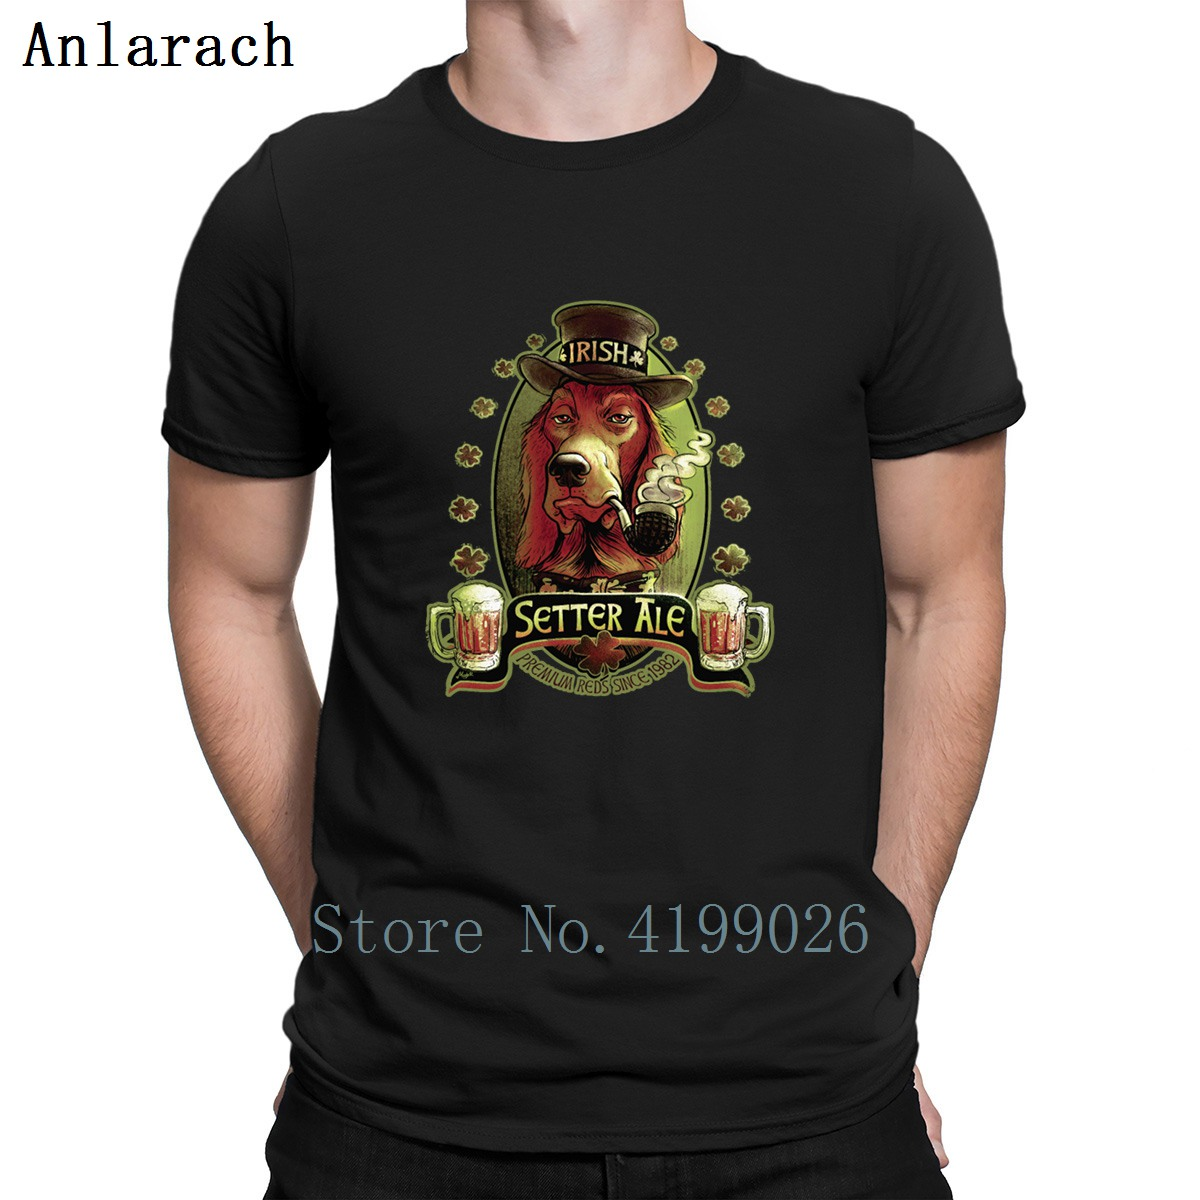 Irish Setter Red Ale Tshirt Hip Hop Designer Sunlight Natural Tshirt For Men Popular Solid Color Euro Size S 3xl Cute In T Shirts From Men S Clothing